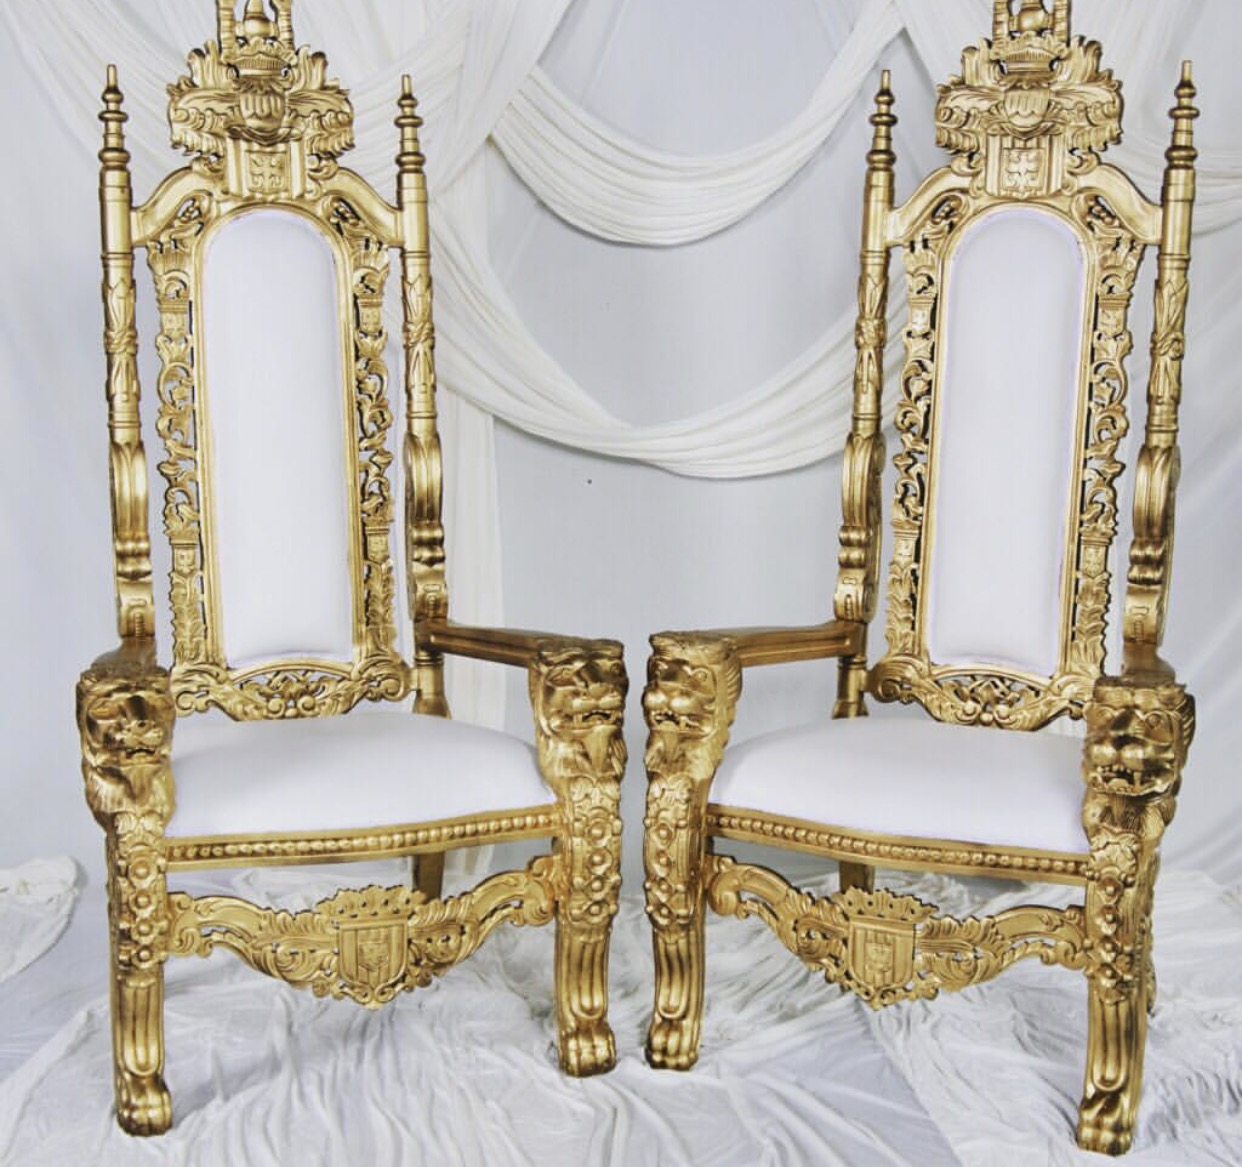 Royal Throne Chair (s)